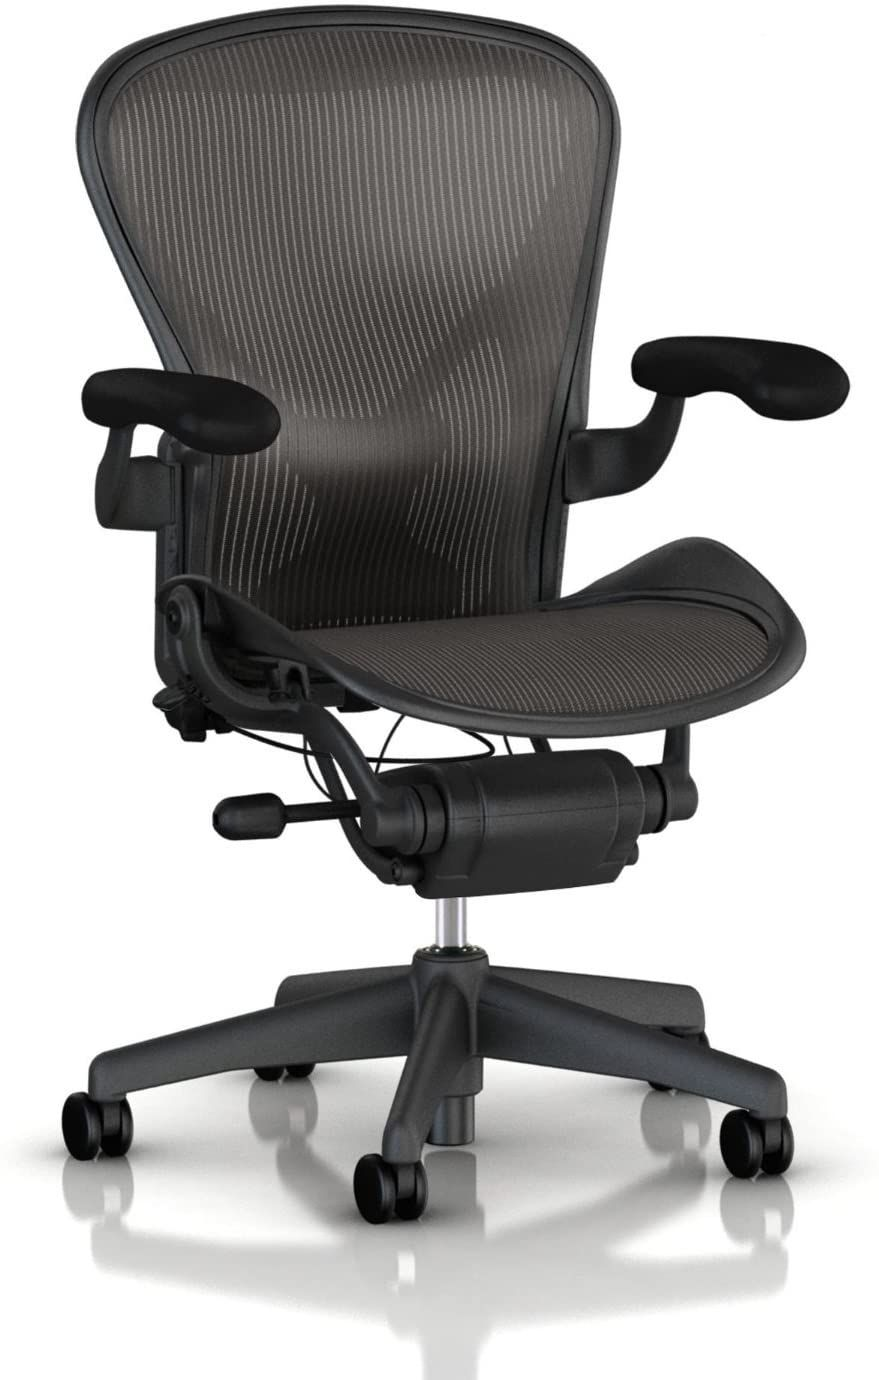 Herman Miller Classic Aeron Task Chair Highly Adj W Posturefit Support Tilit Limiter W Seat Angle Adj Fully Adj Vinyl Arms Carpet Casters In 2020 Chair Aeron Chairs Task Chair